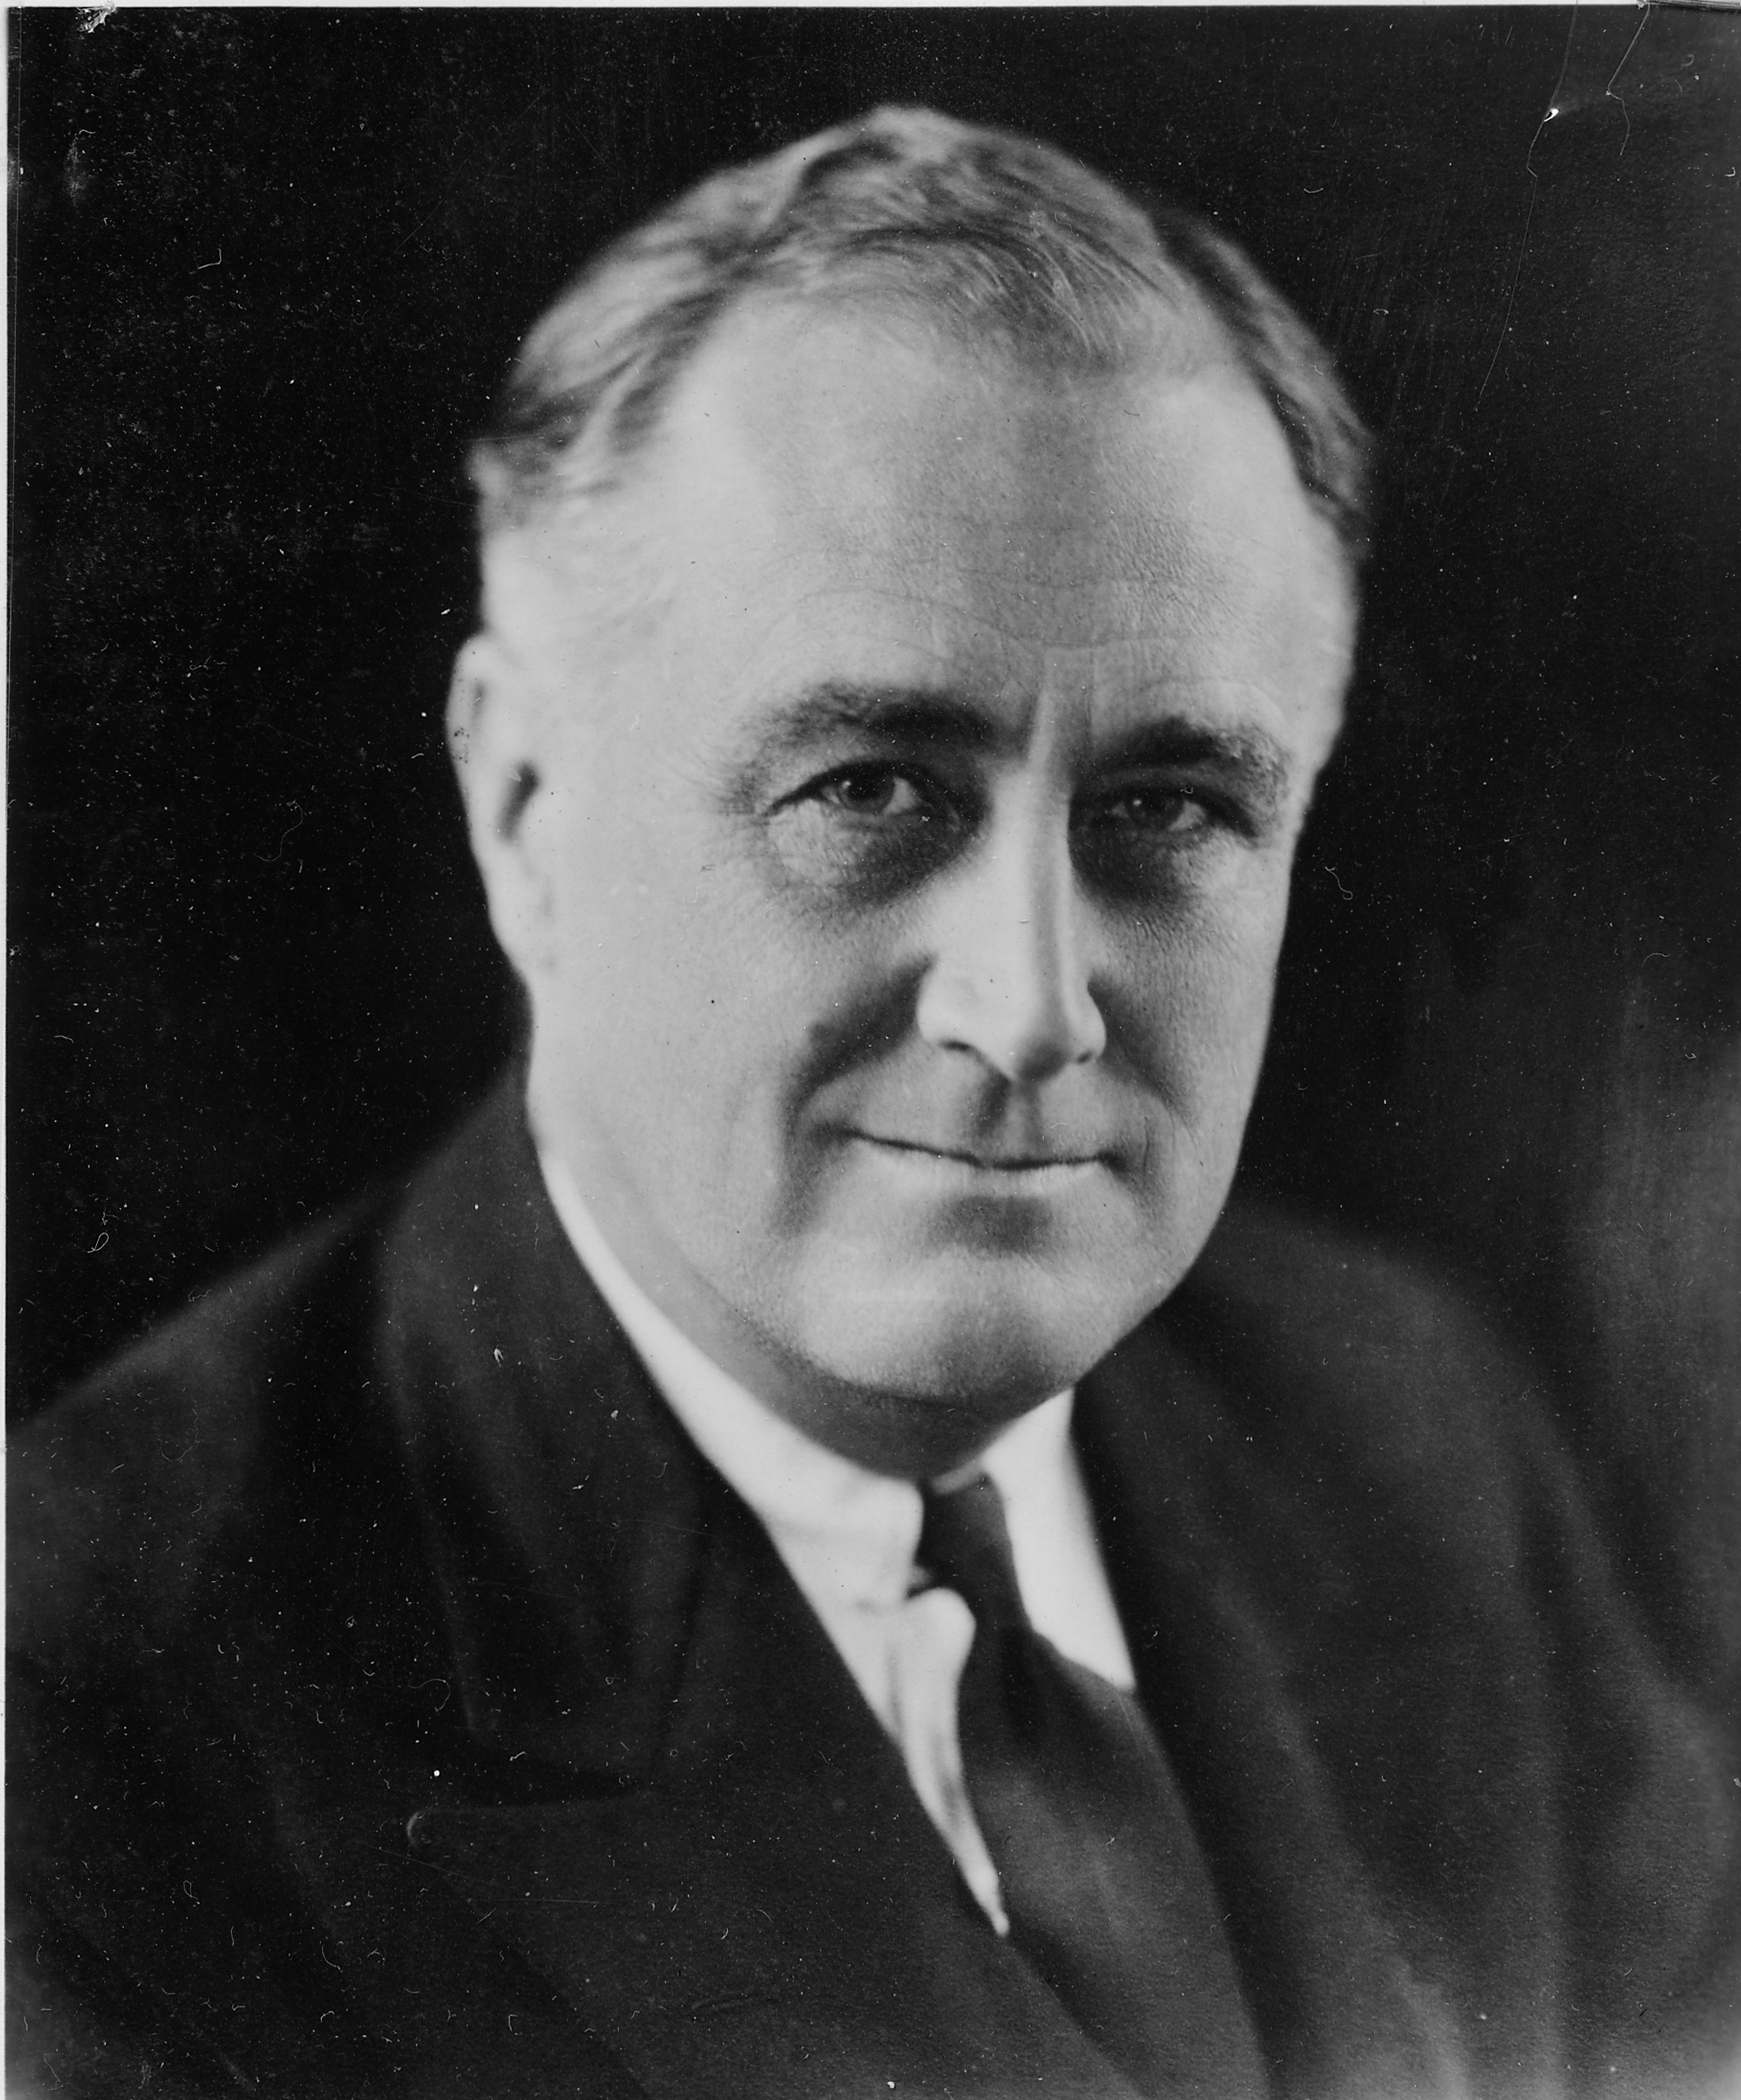 president franklin d roosevelt the First president to fly in/steer a blimp franklin d roosevelt was the first sitting president to ride in an airplane, an occasion marked by a very long overseas flight to attend the 1943 casablanca conference.